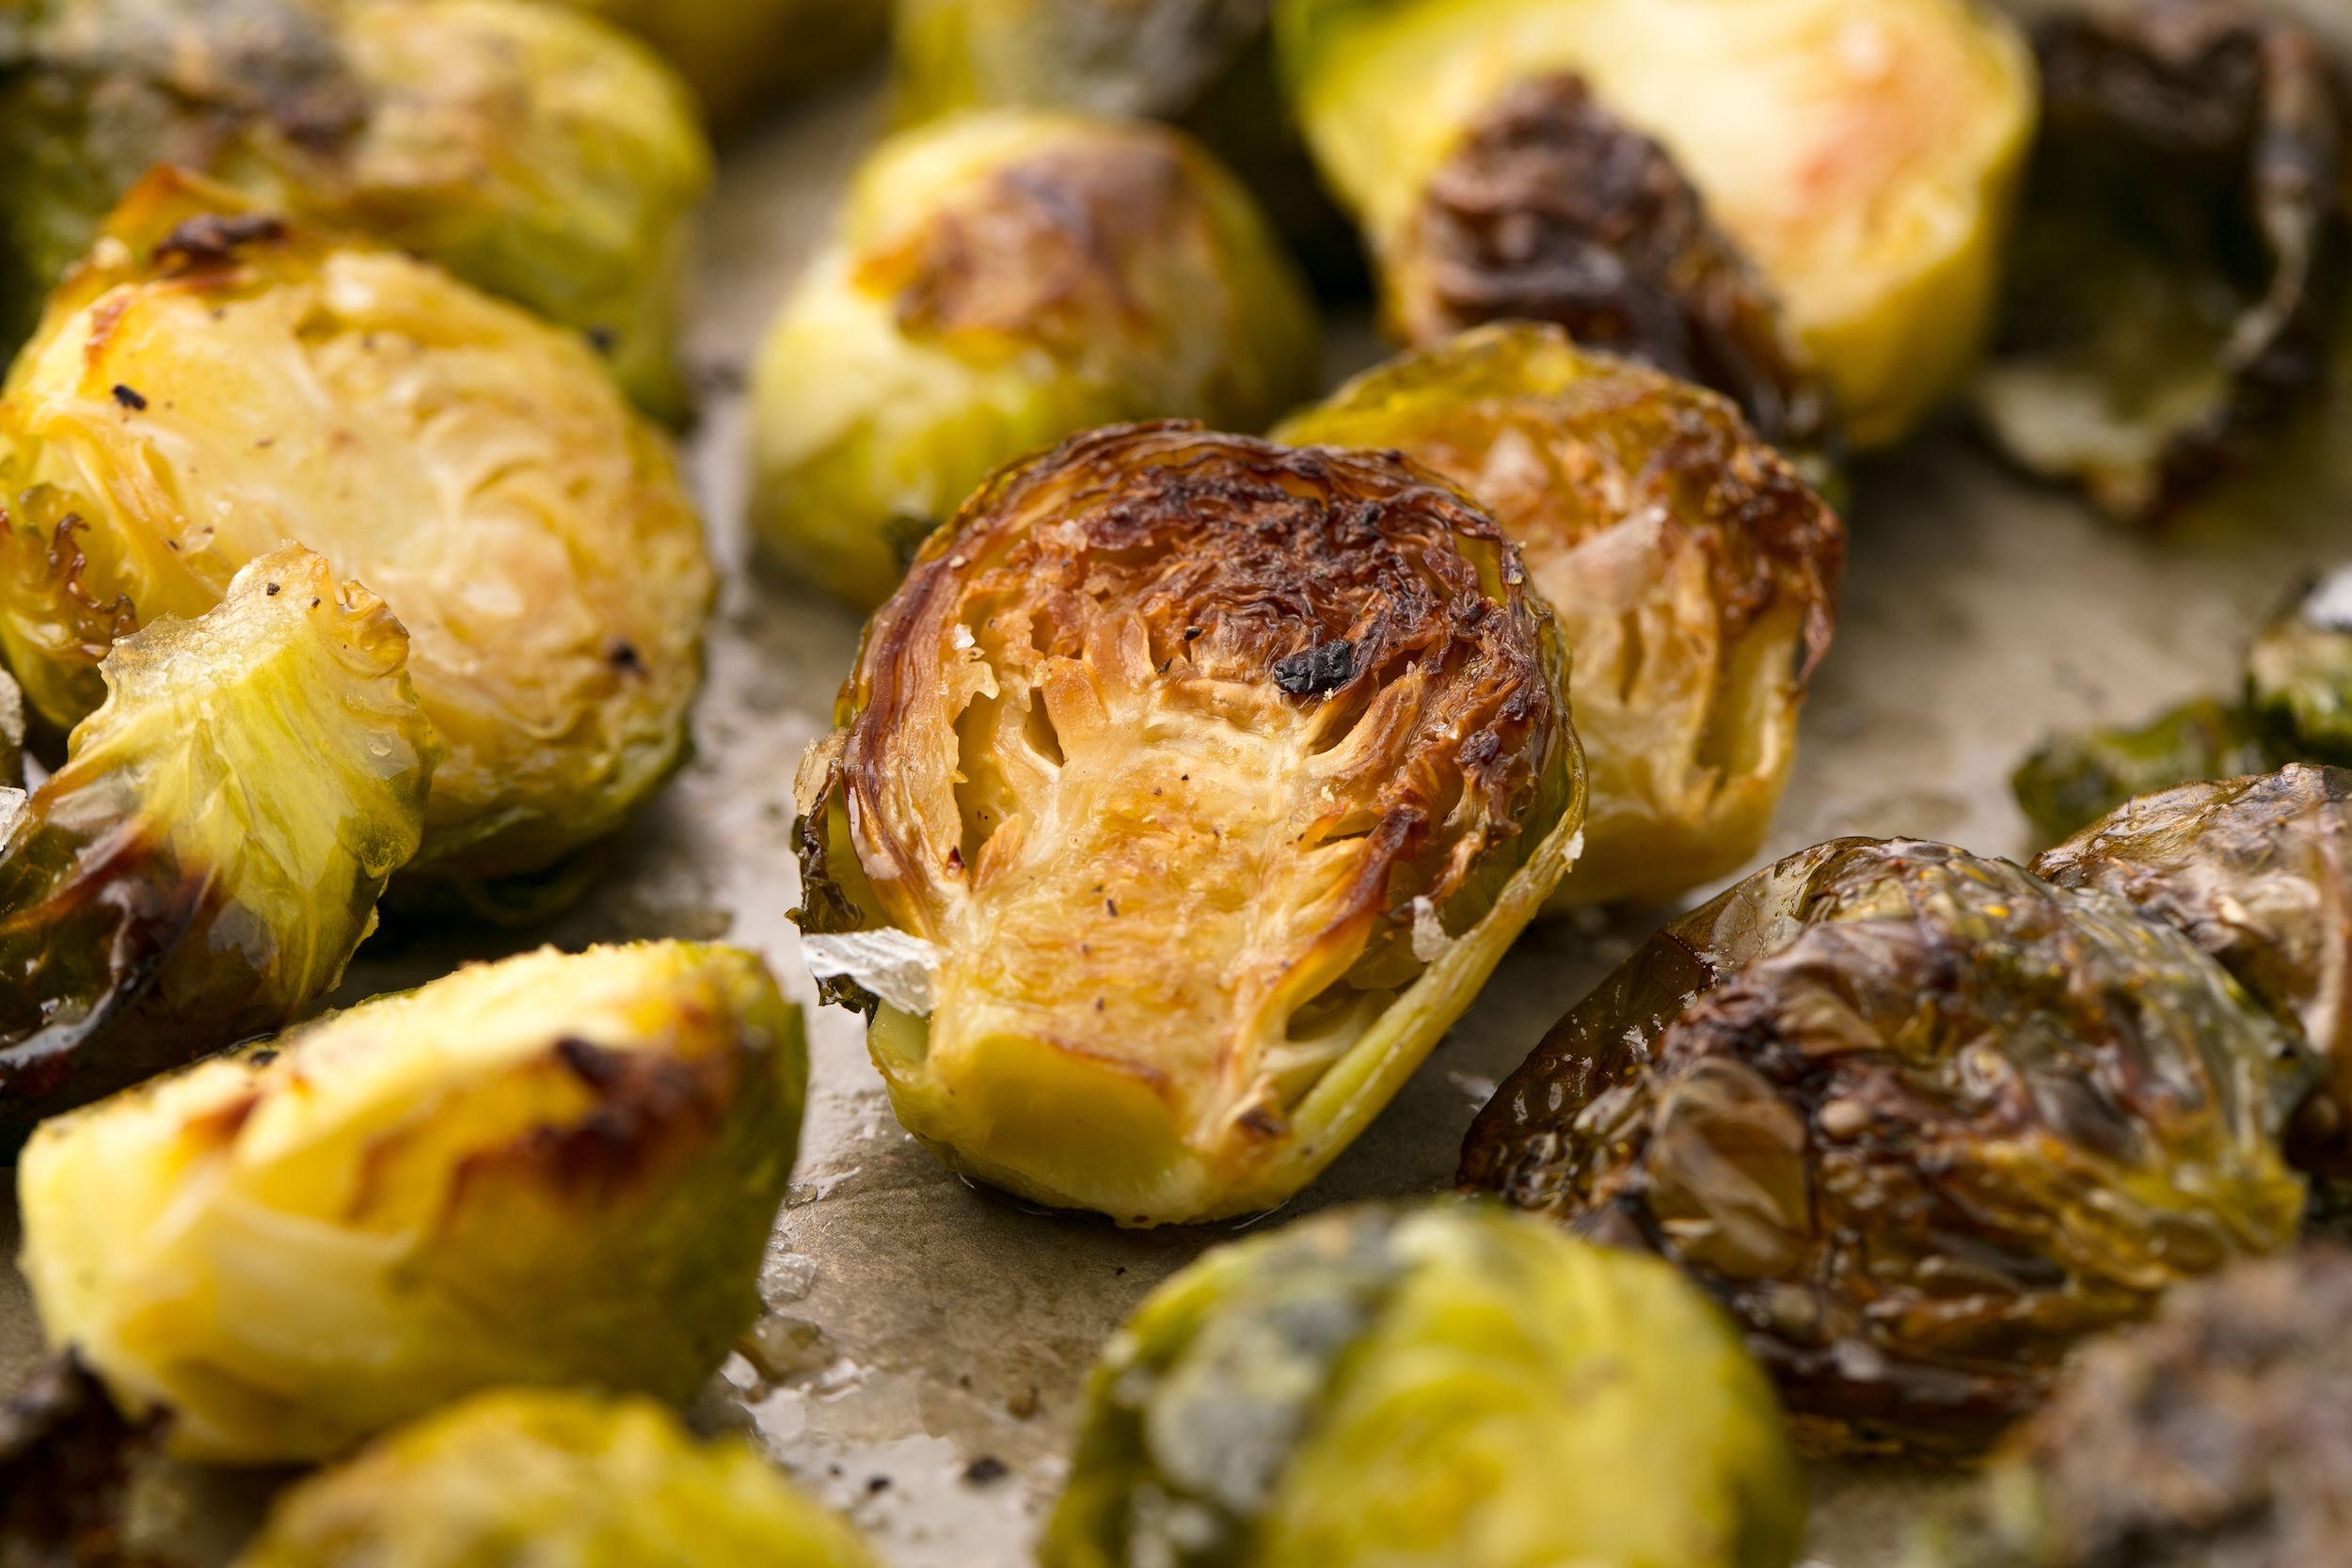 How long should you roast brussel sprouts in the oven